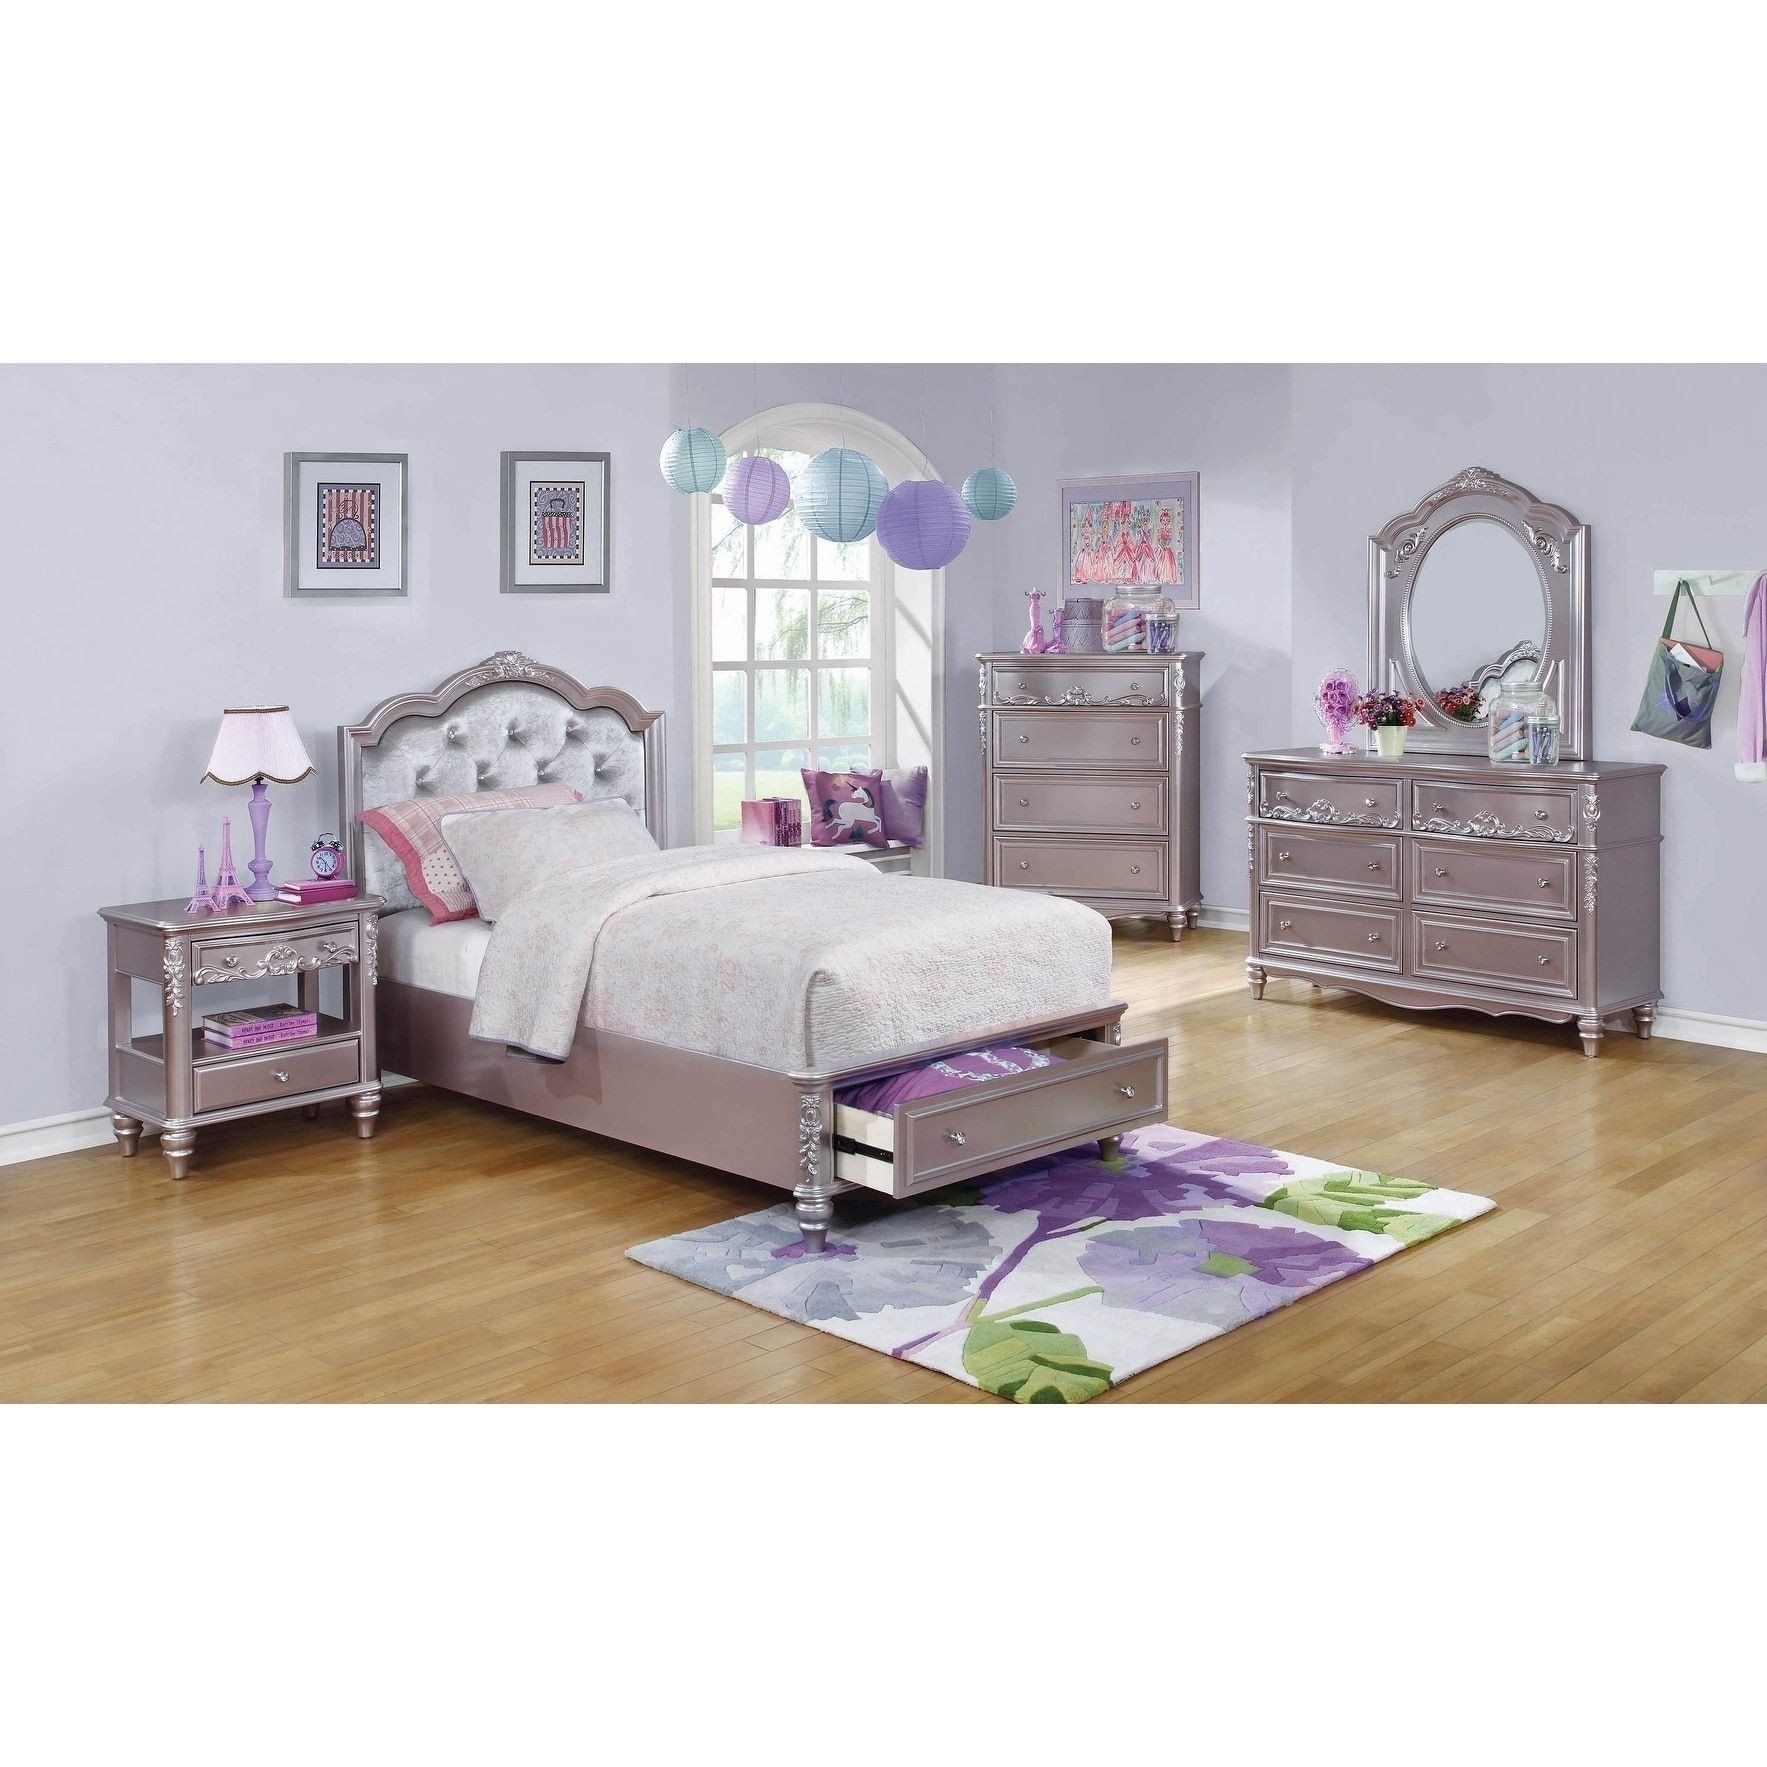 Cheap Bedroom Set Twin Luxury Seraphina Metallic Lilac 4 Piece Bedroom Set With 2 Bedroom Set Platform Bedroom Sets Kids Bedroom Sets